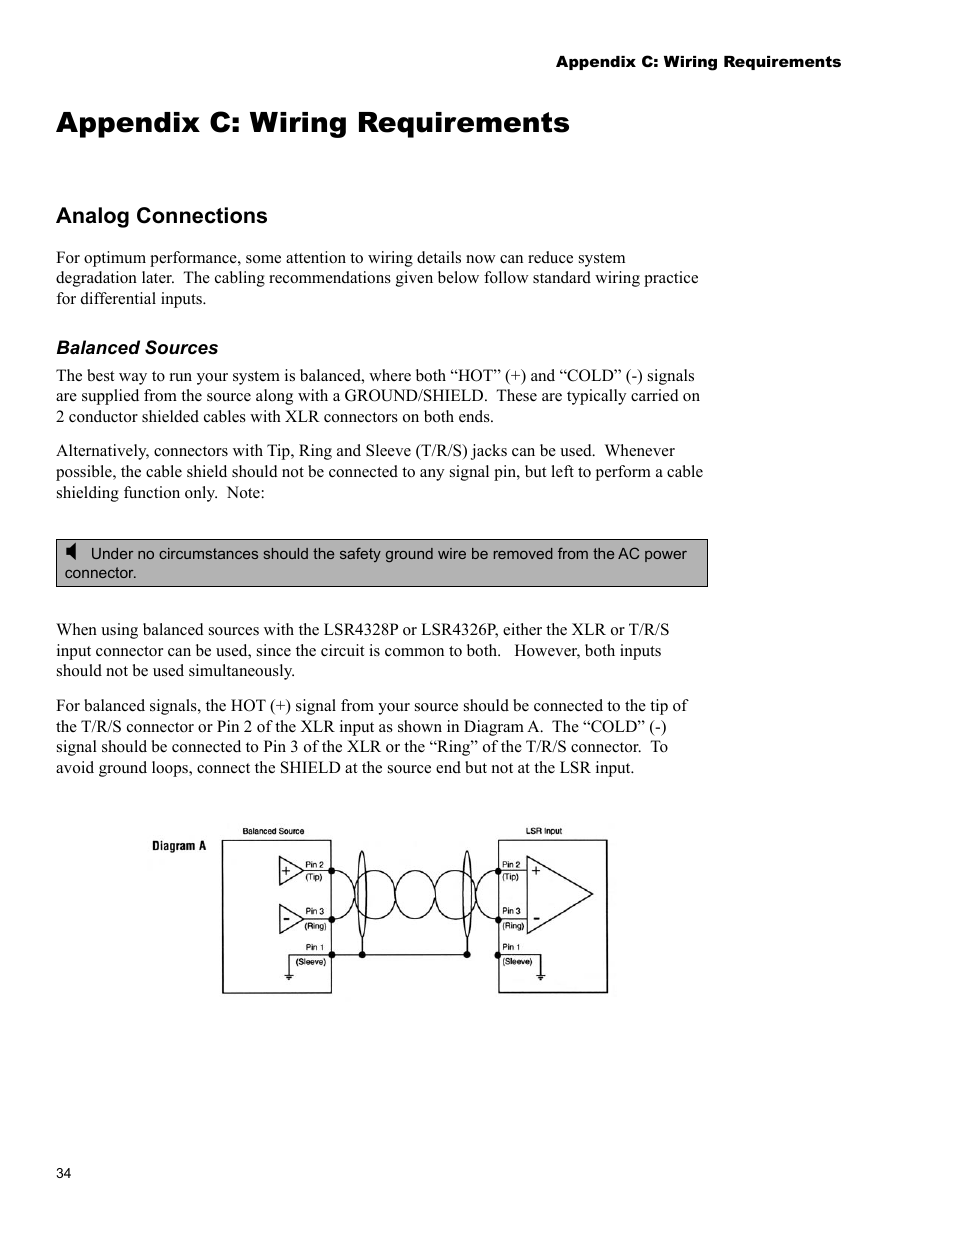 hight resolution of appendix c wiring requirements jbl lsr4326p user manual page 38 51